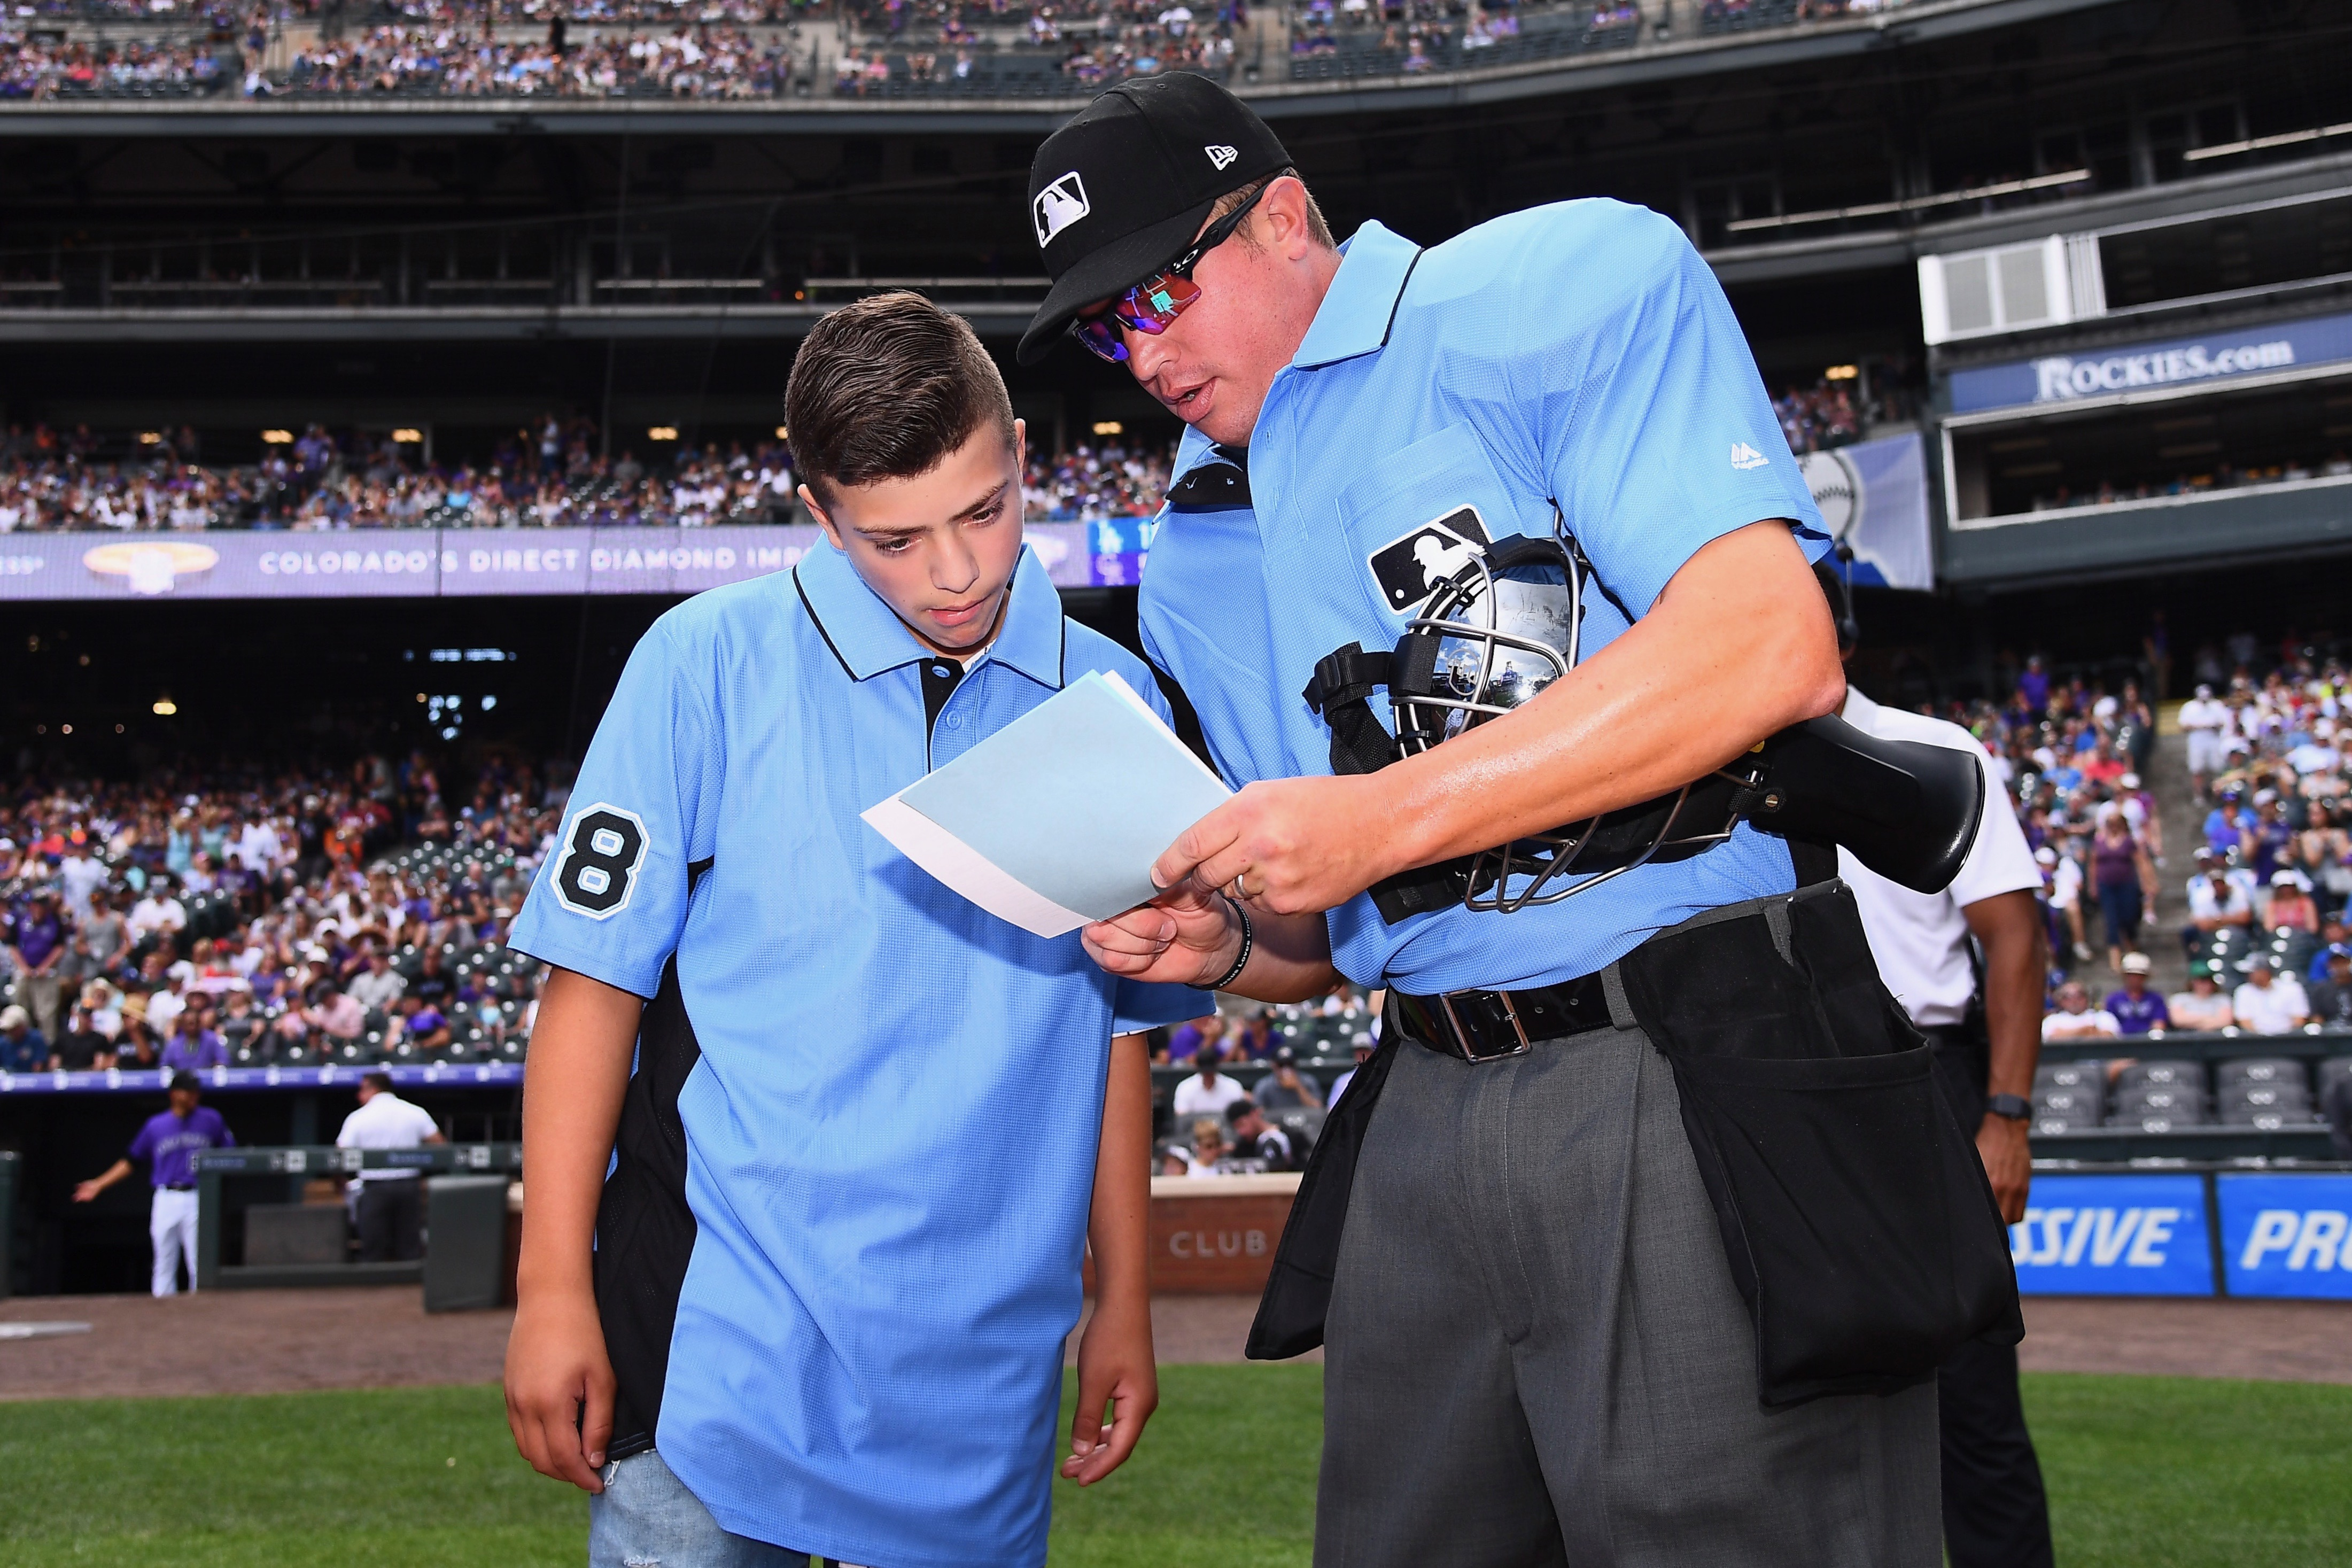 Josh Cordova, 13, gets pre-game instructions from umpire Cory Blaser before theRockies-Dodgers game at Coors Field on Sunday, June 30, 2019. Cordova was the umpire at a youth game last month in Lakewood that ended in a brawl among parents and coaches.